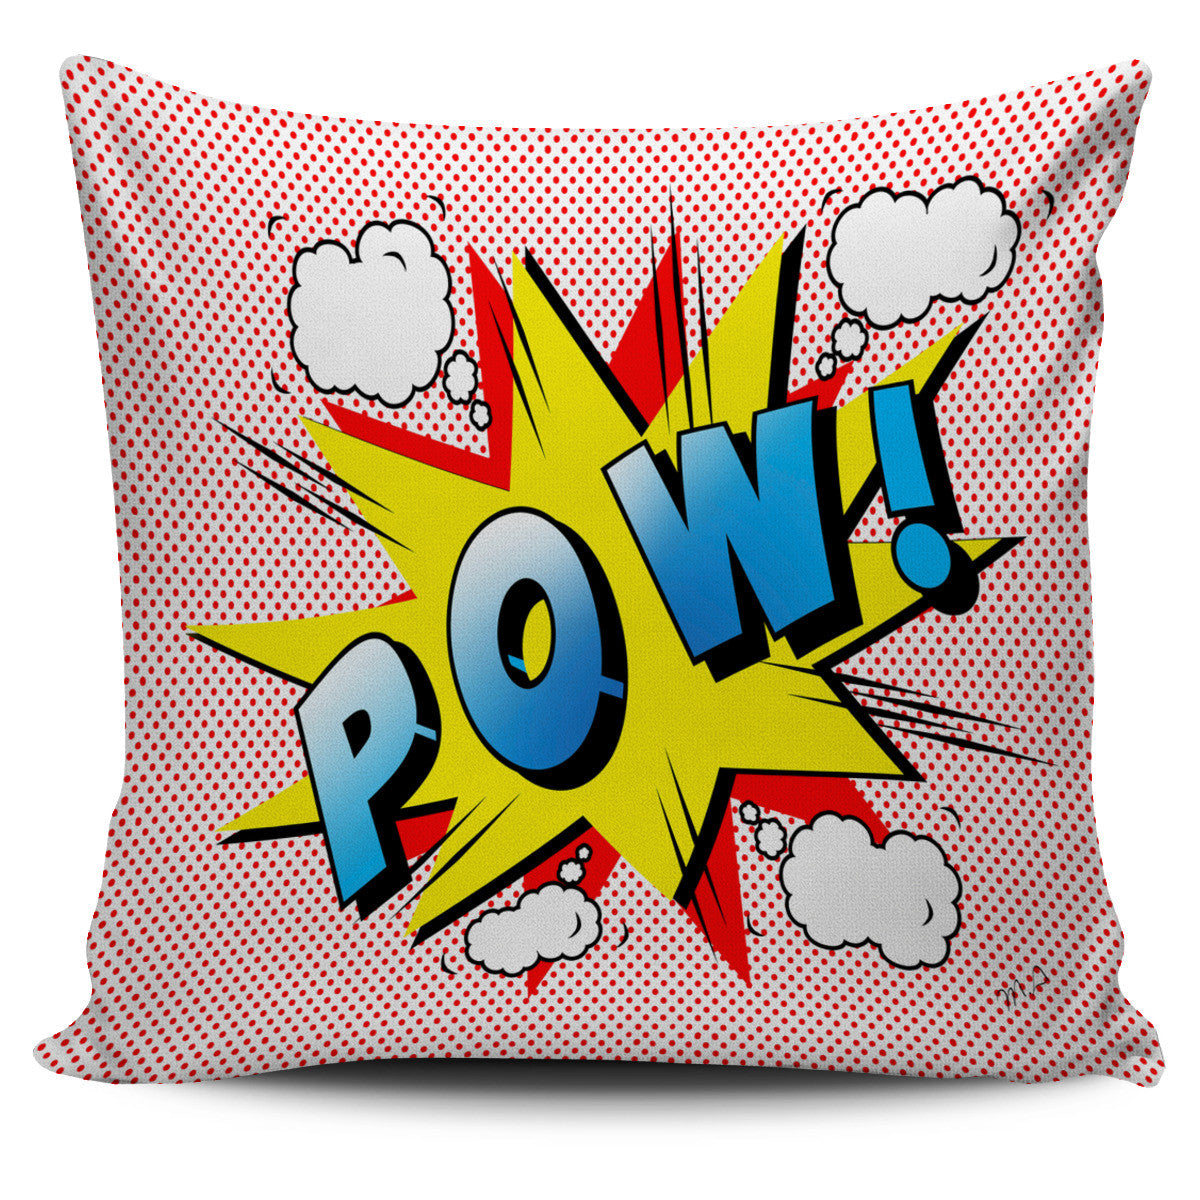 POW Series Pillow Covers